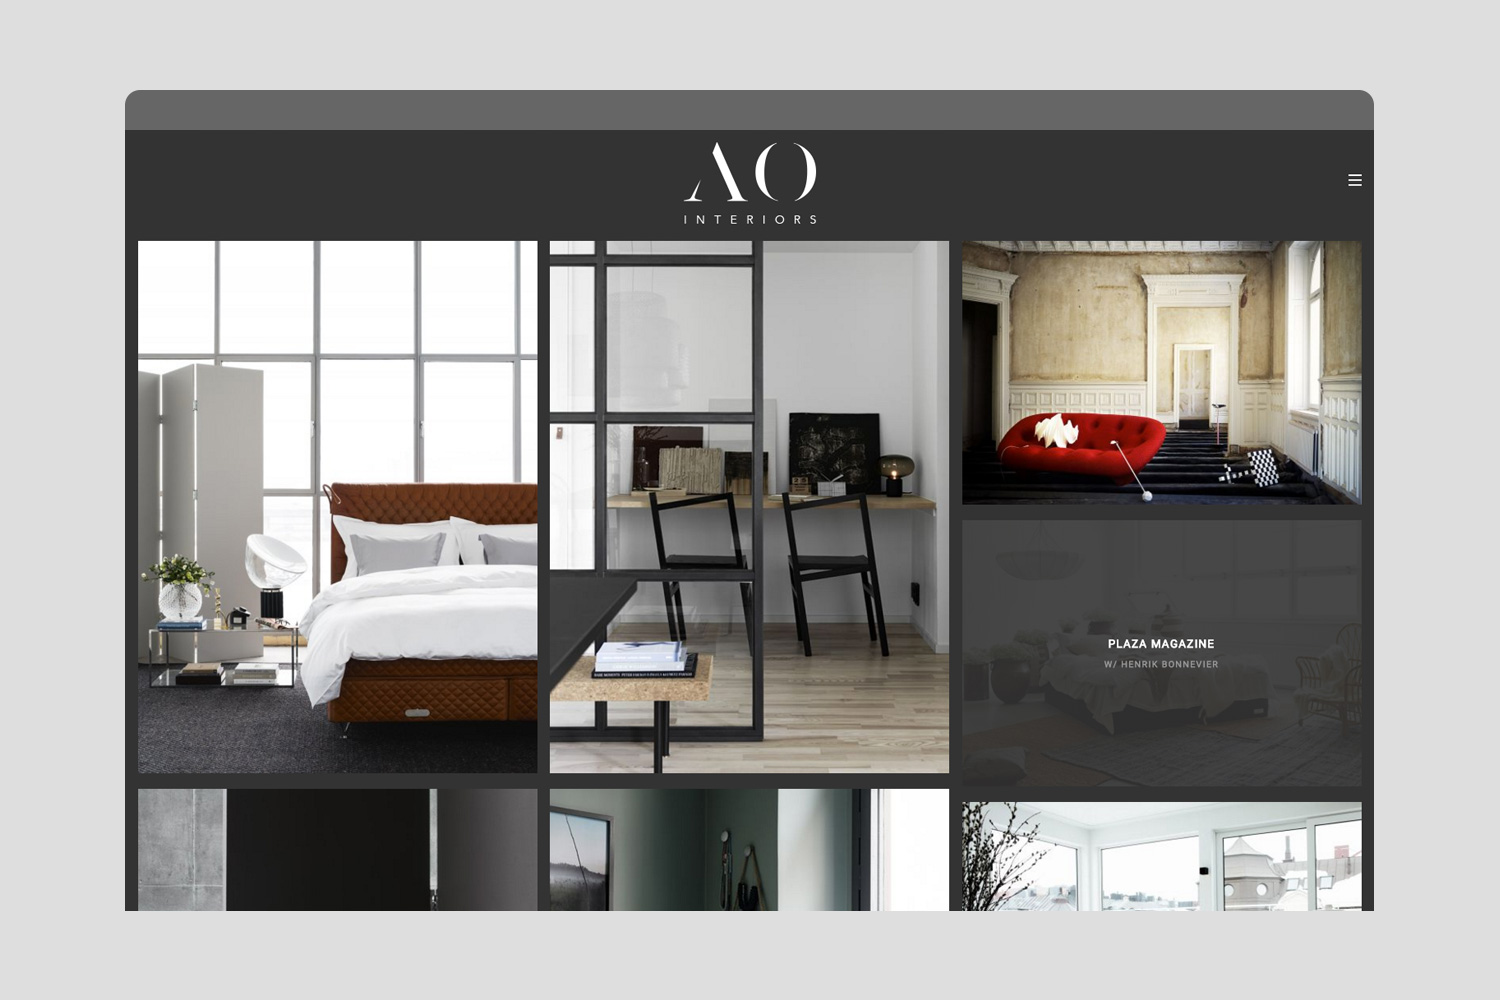 ao-interiors-web-design-astein-1